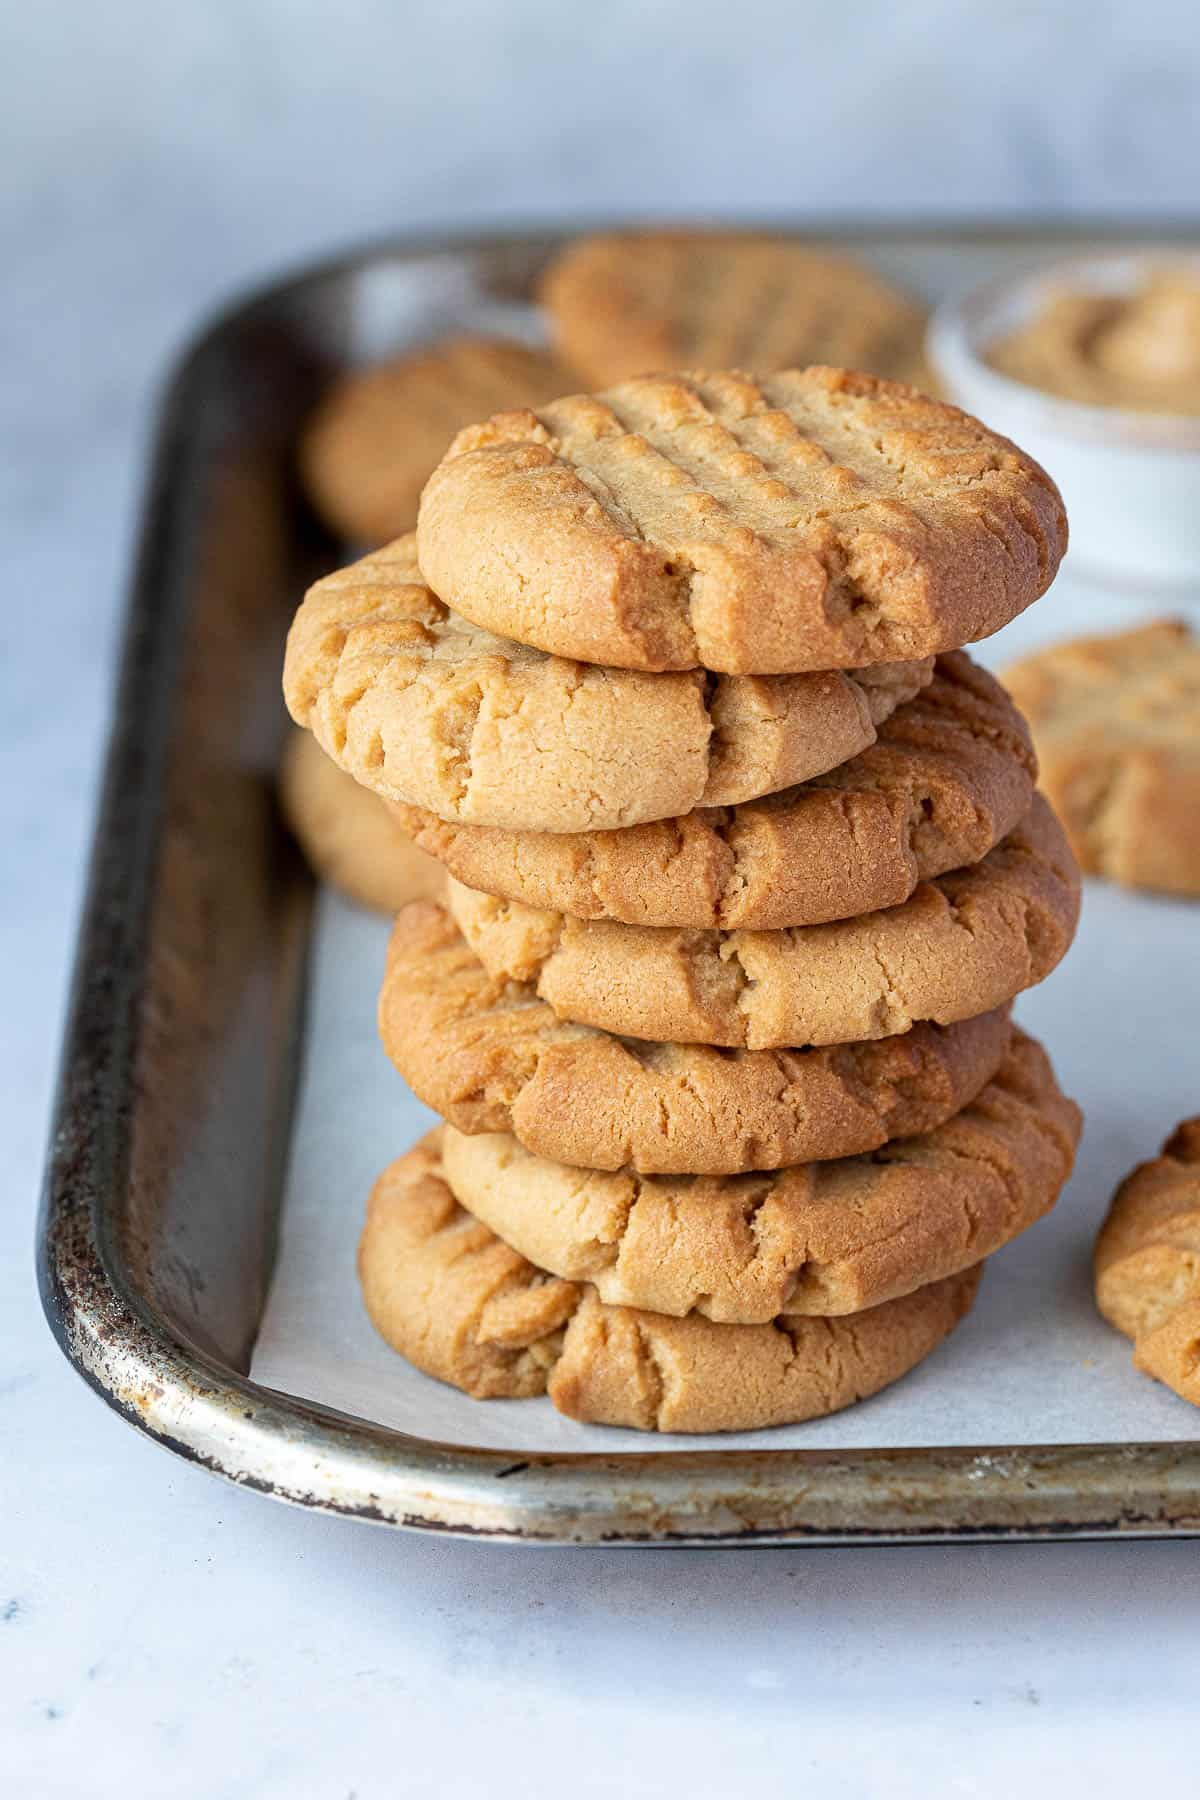 A stack of peanut butter cookies.